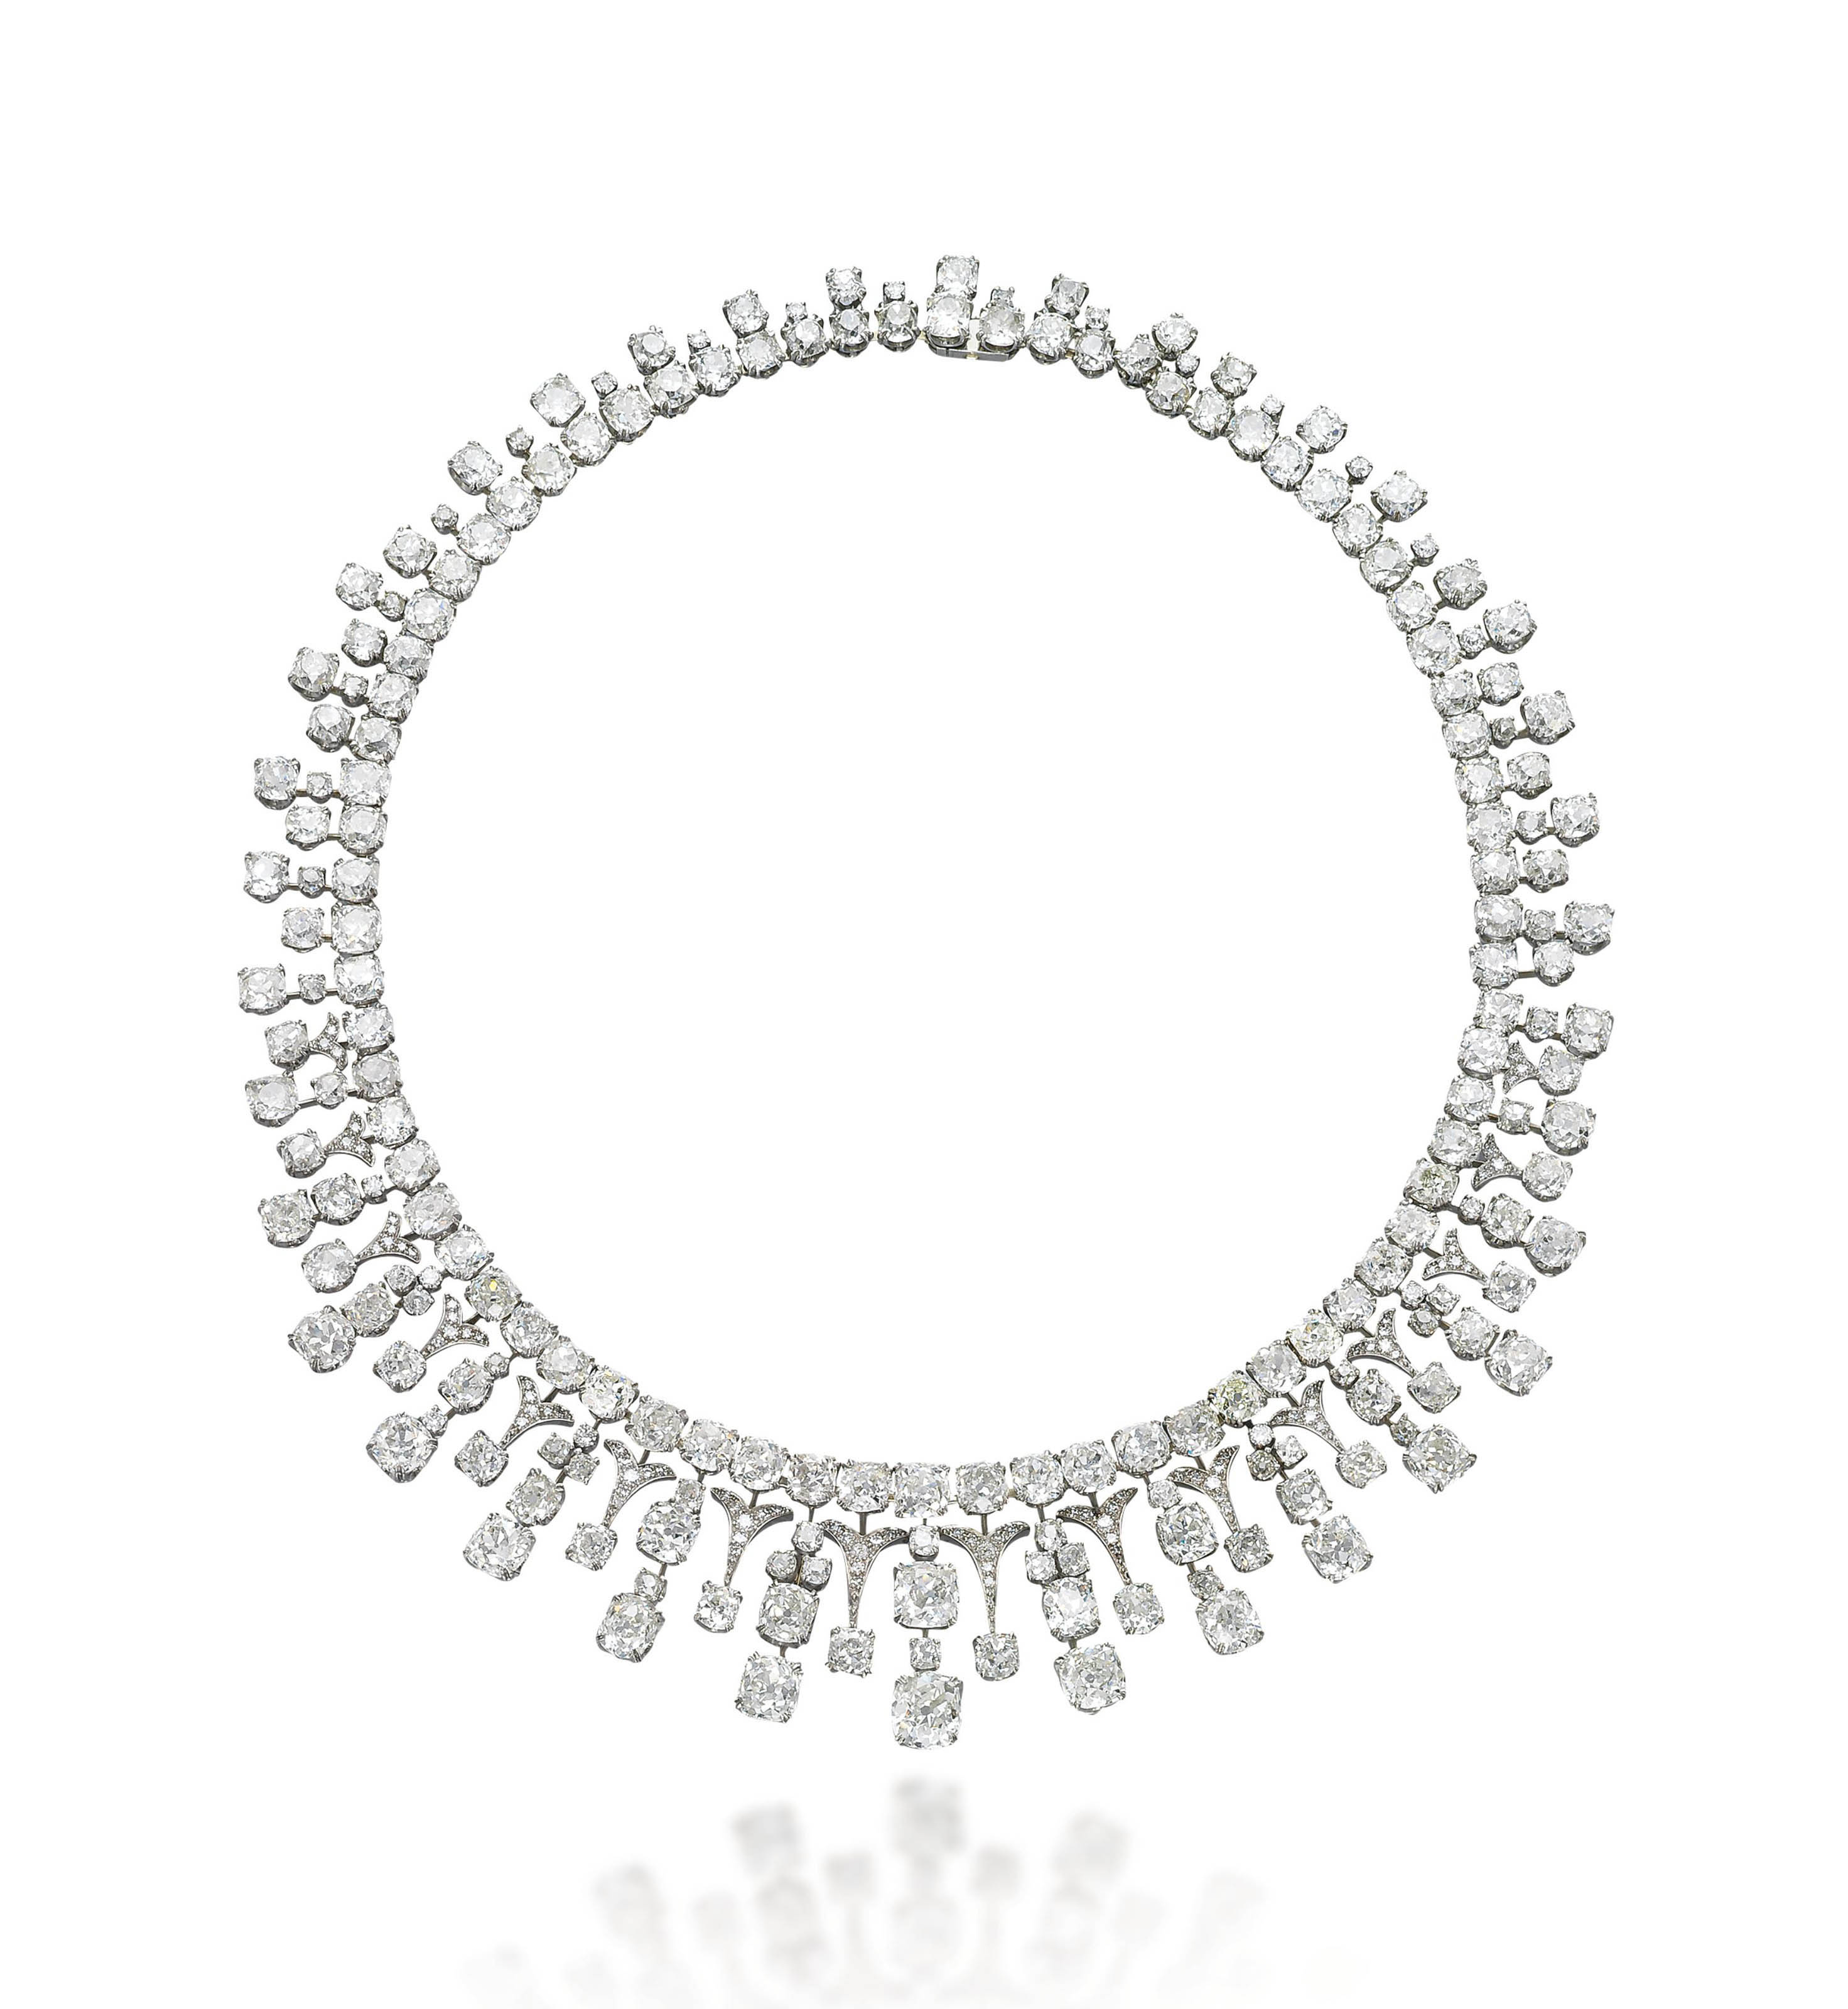 AN ANTIQUE DIAMOND NECKLACE, BY MEISTER